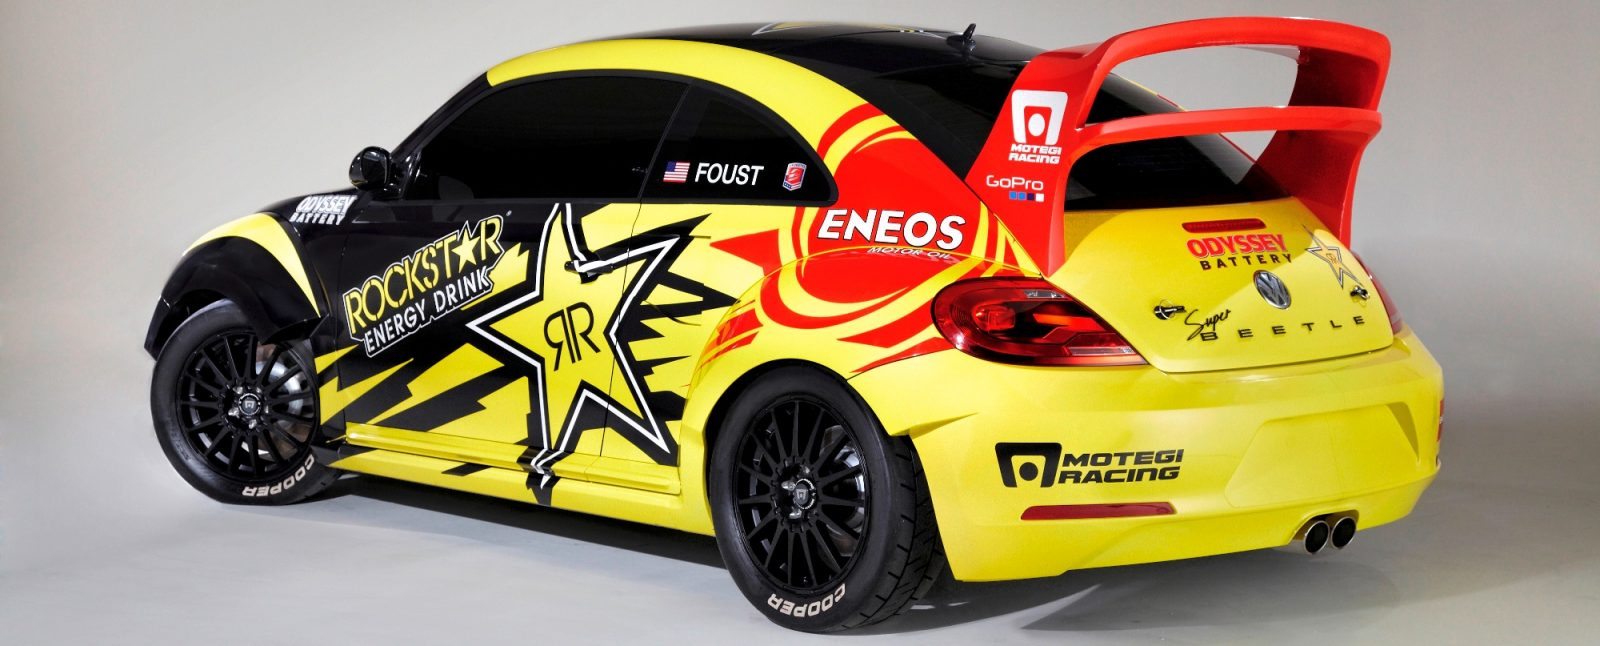 All-New FIA RallyCross Series Looks FUN! Dart, Sonic, Beetle, Fiesta, Fabia, Pug 208GTI and More On-Board 16